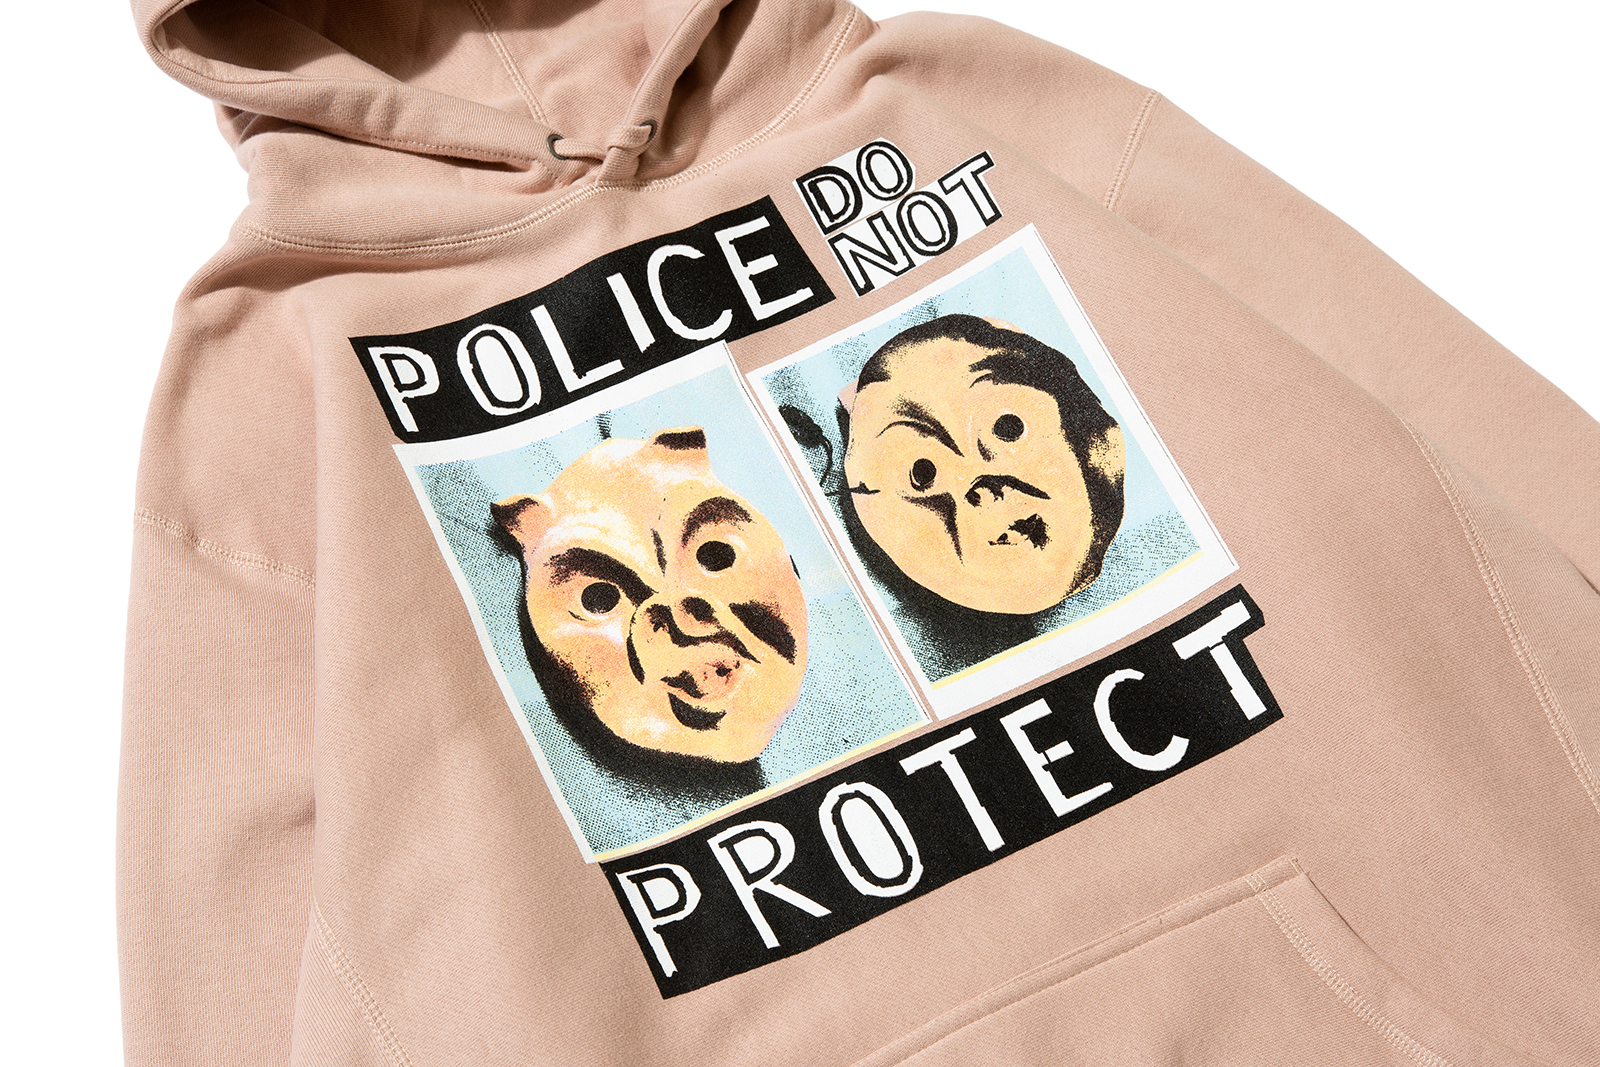 police-do-not-protect-hooded-sweatshirt_p1